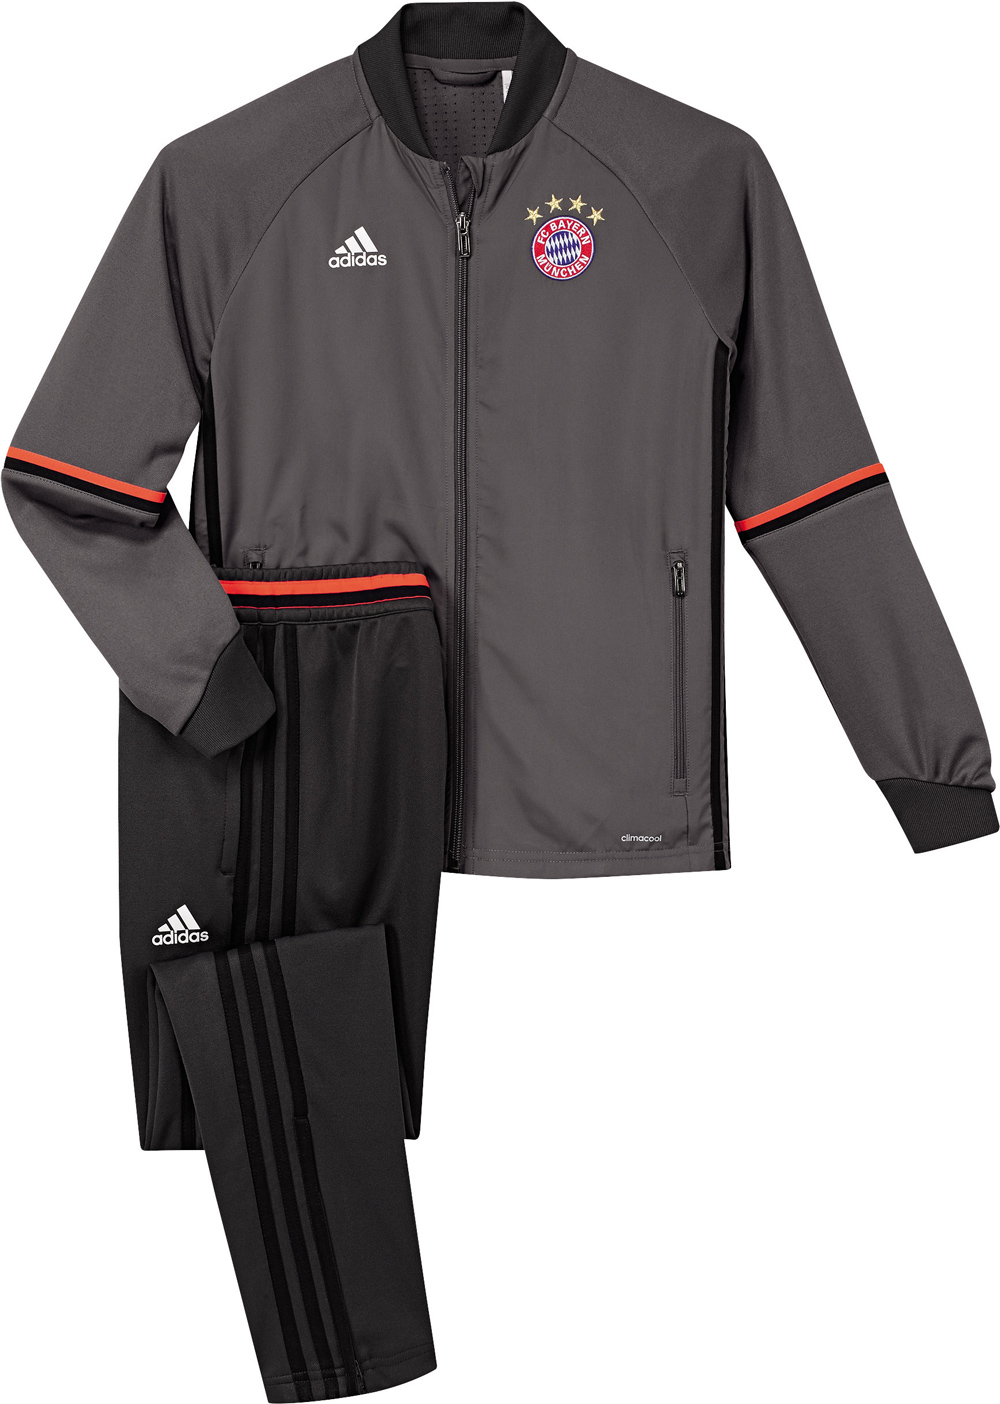 adidas kinder trainingsanzug fc bayern ebay. Black Bedroom Furniture Sets. Home Design Ideas